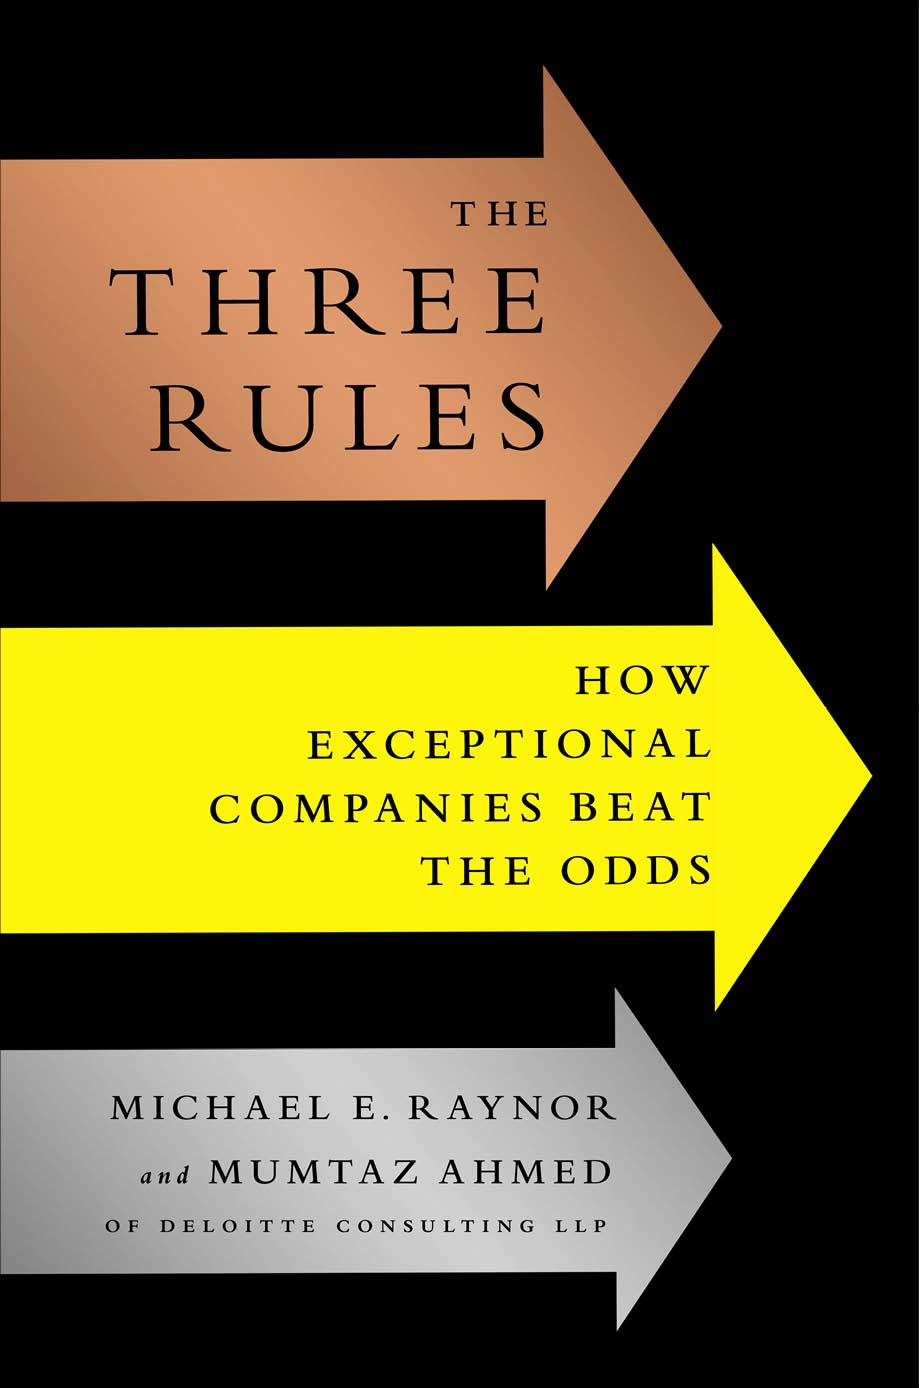 The Three Rules How Exceptional Companies Think